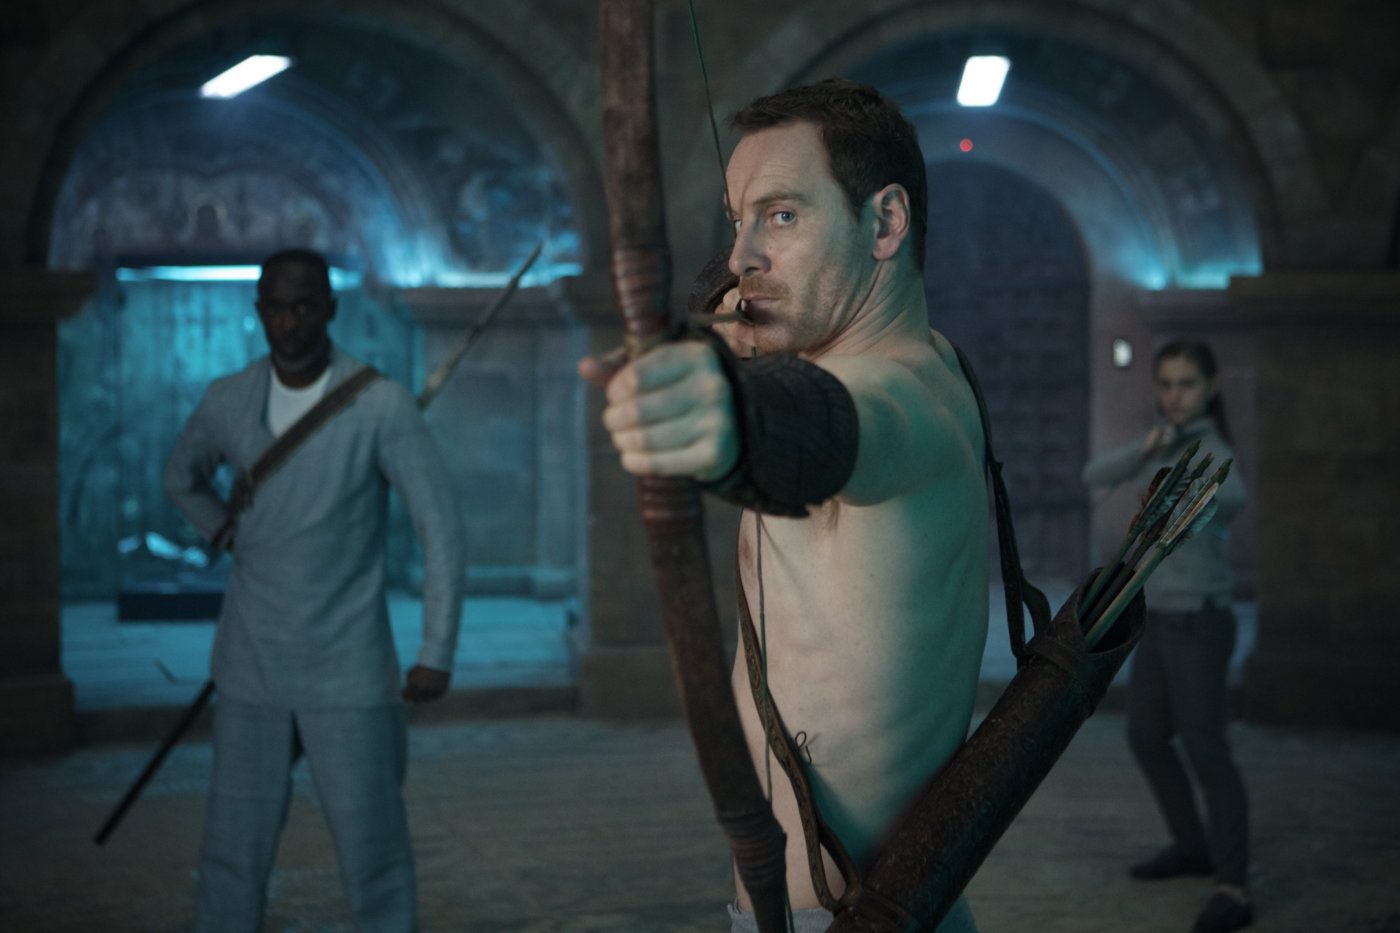 Michael Kenneth Williams, Michael Fassbender, and Octavia Selena Alexandru in Assassin's Creed (2016)